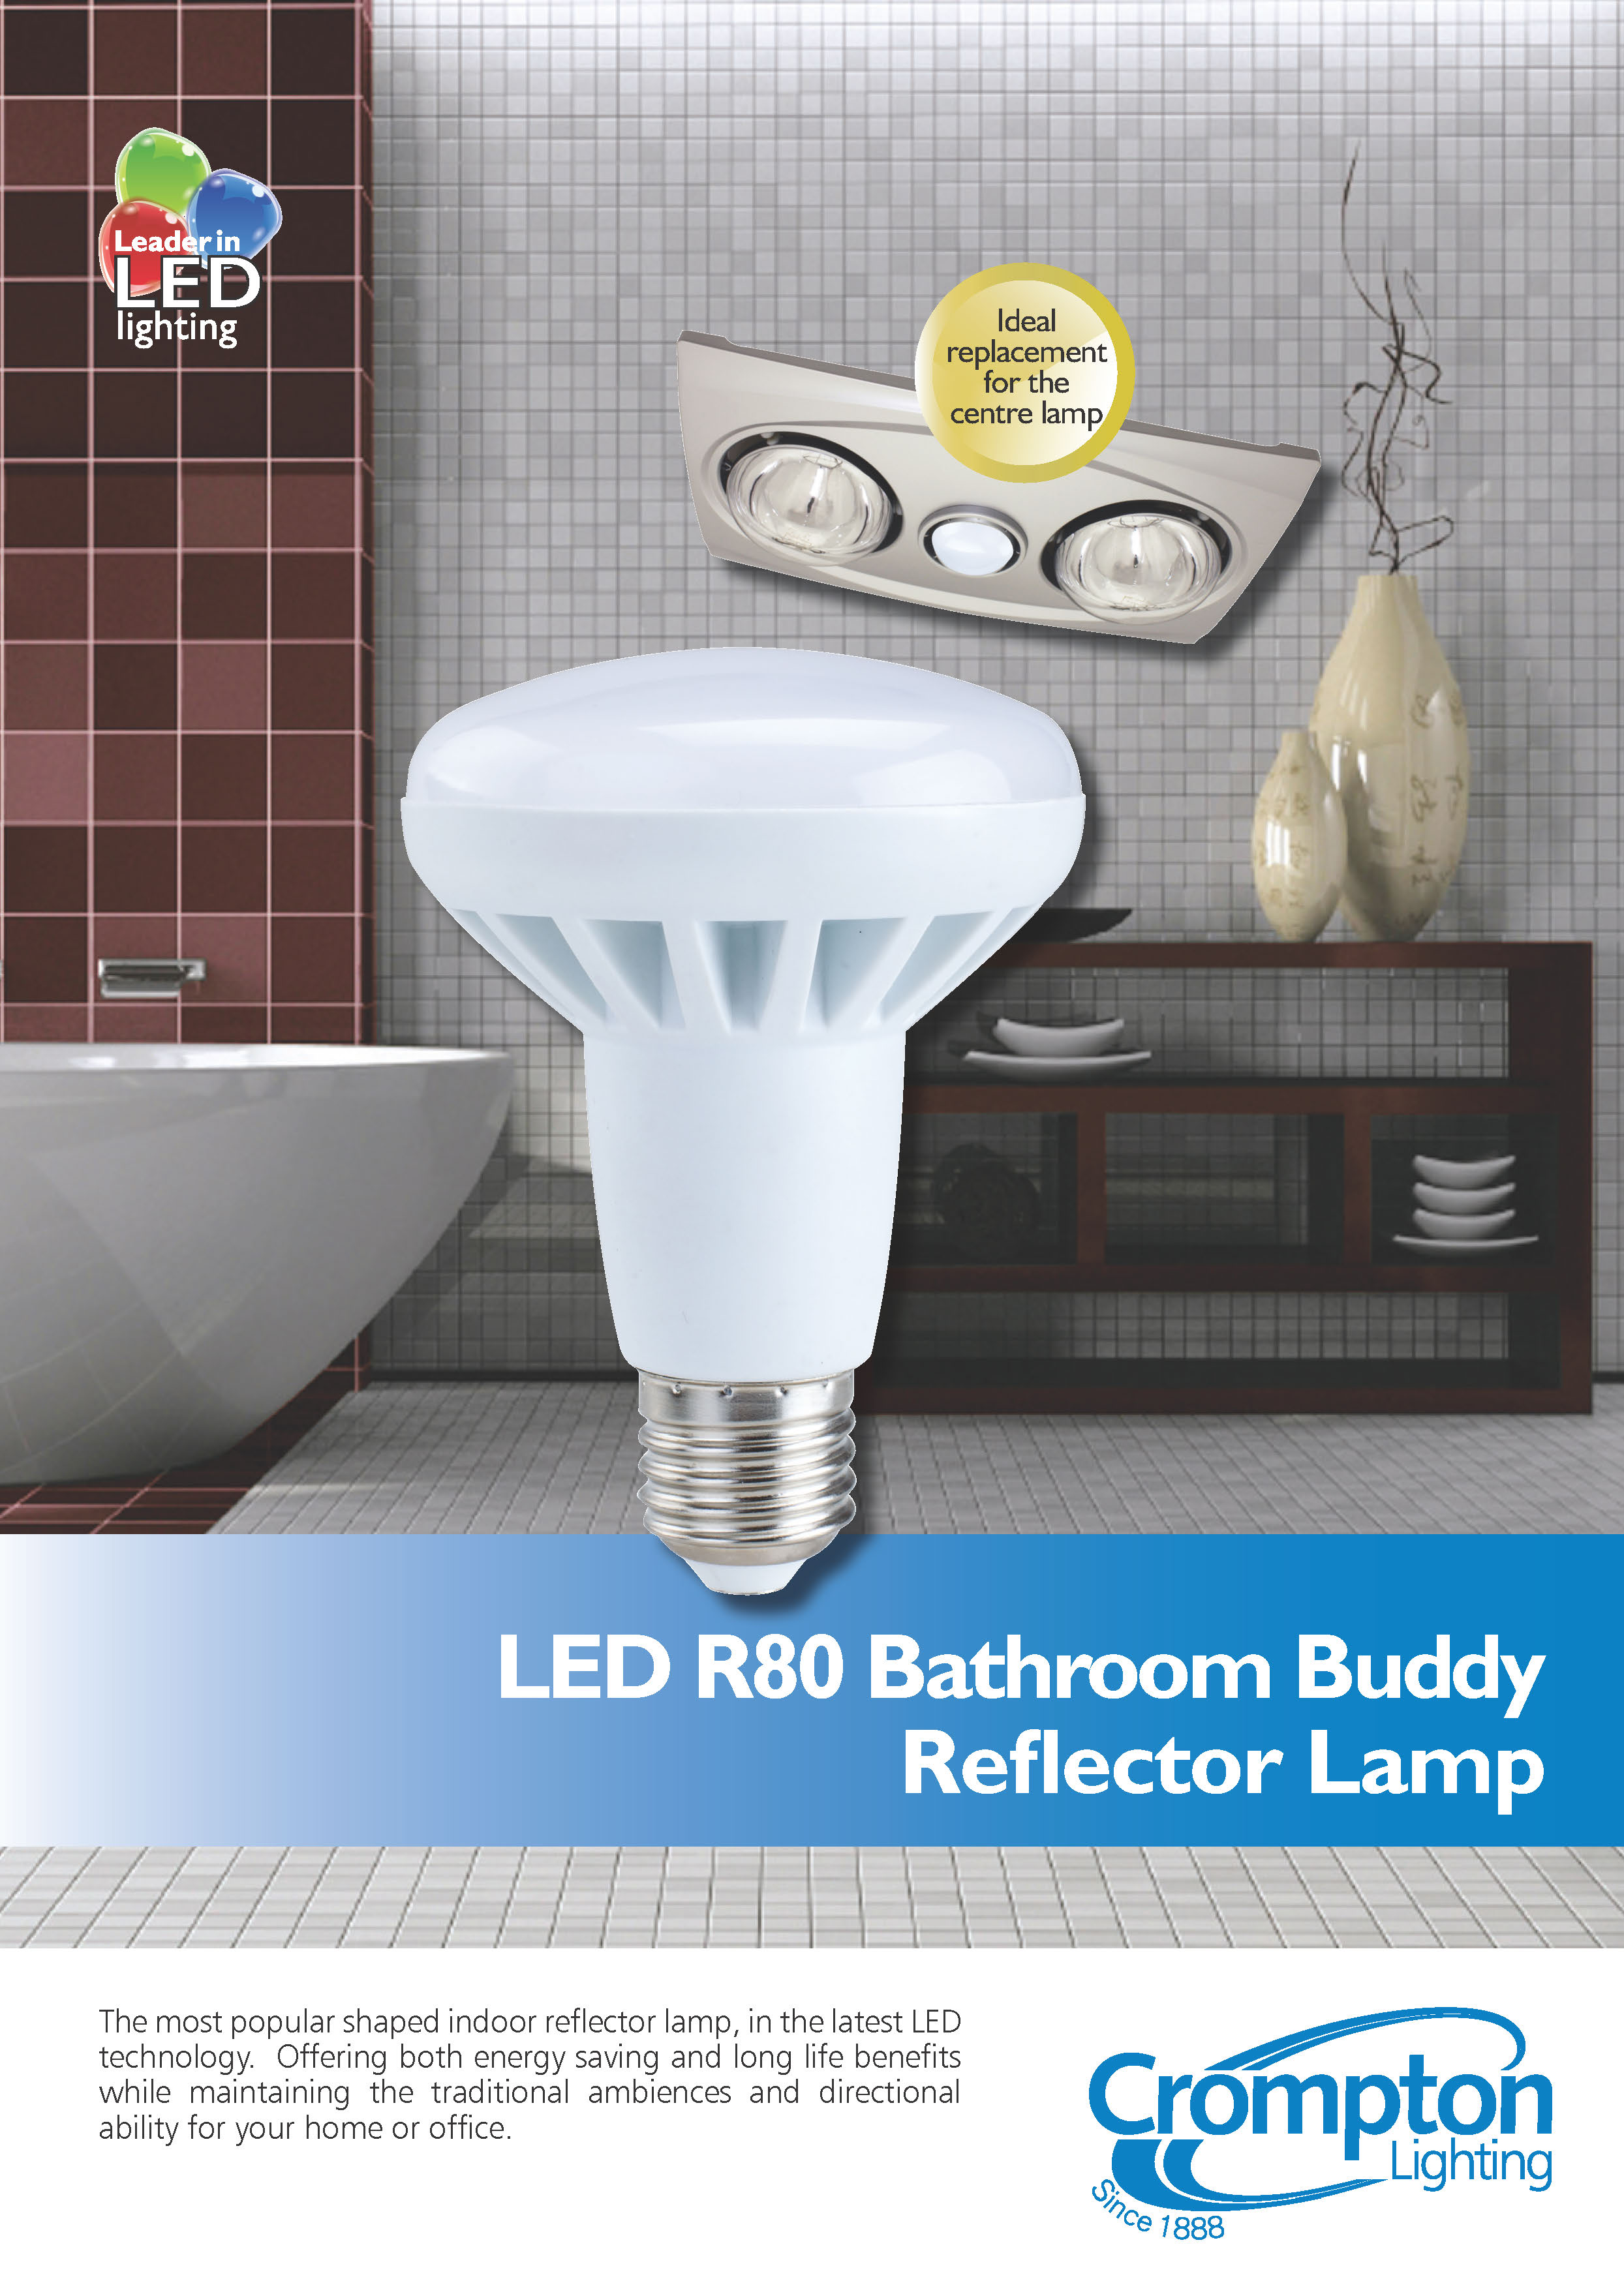 Crompton LED R80 Bathroom Buddy Reflector Lamp FINAL_Page_1